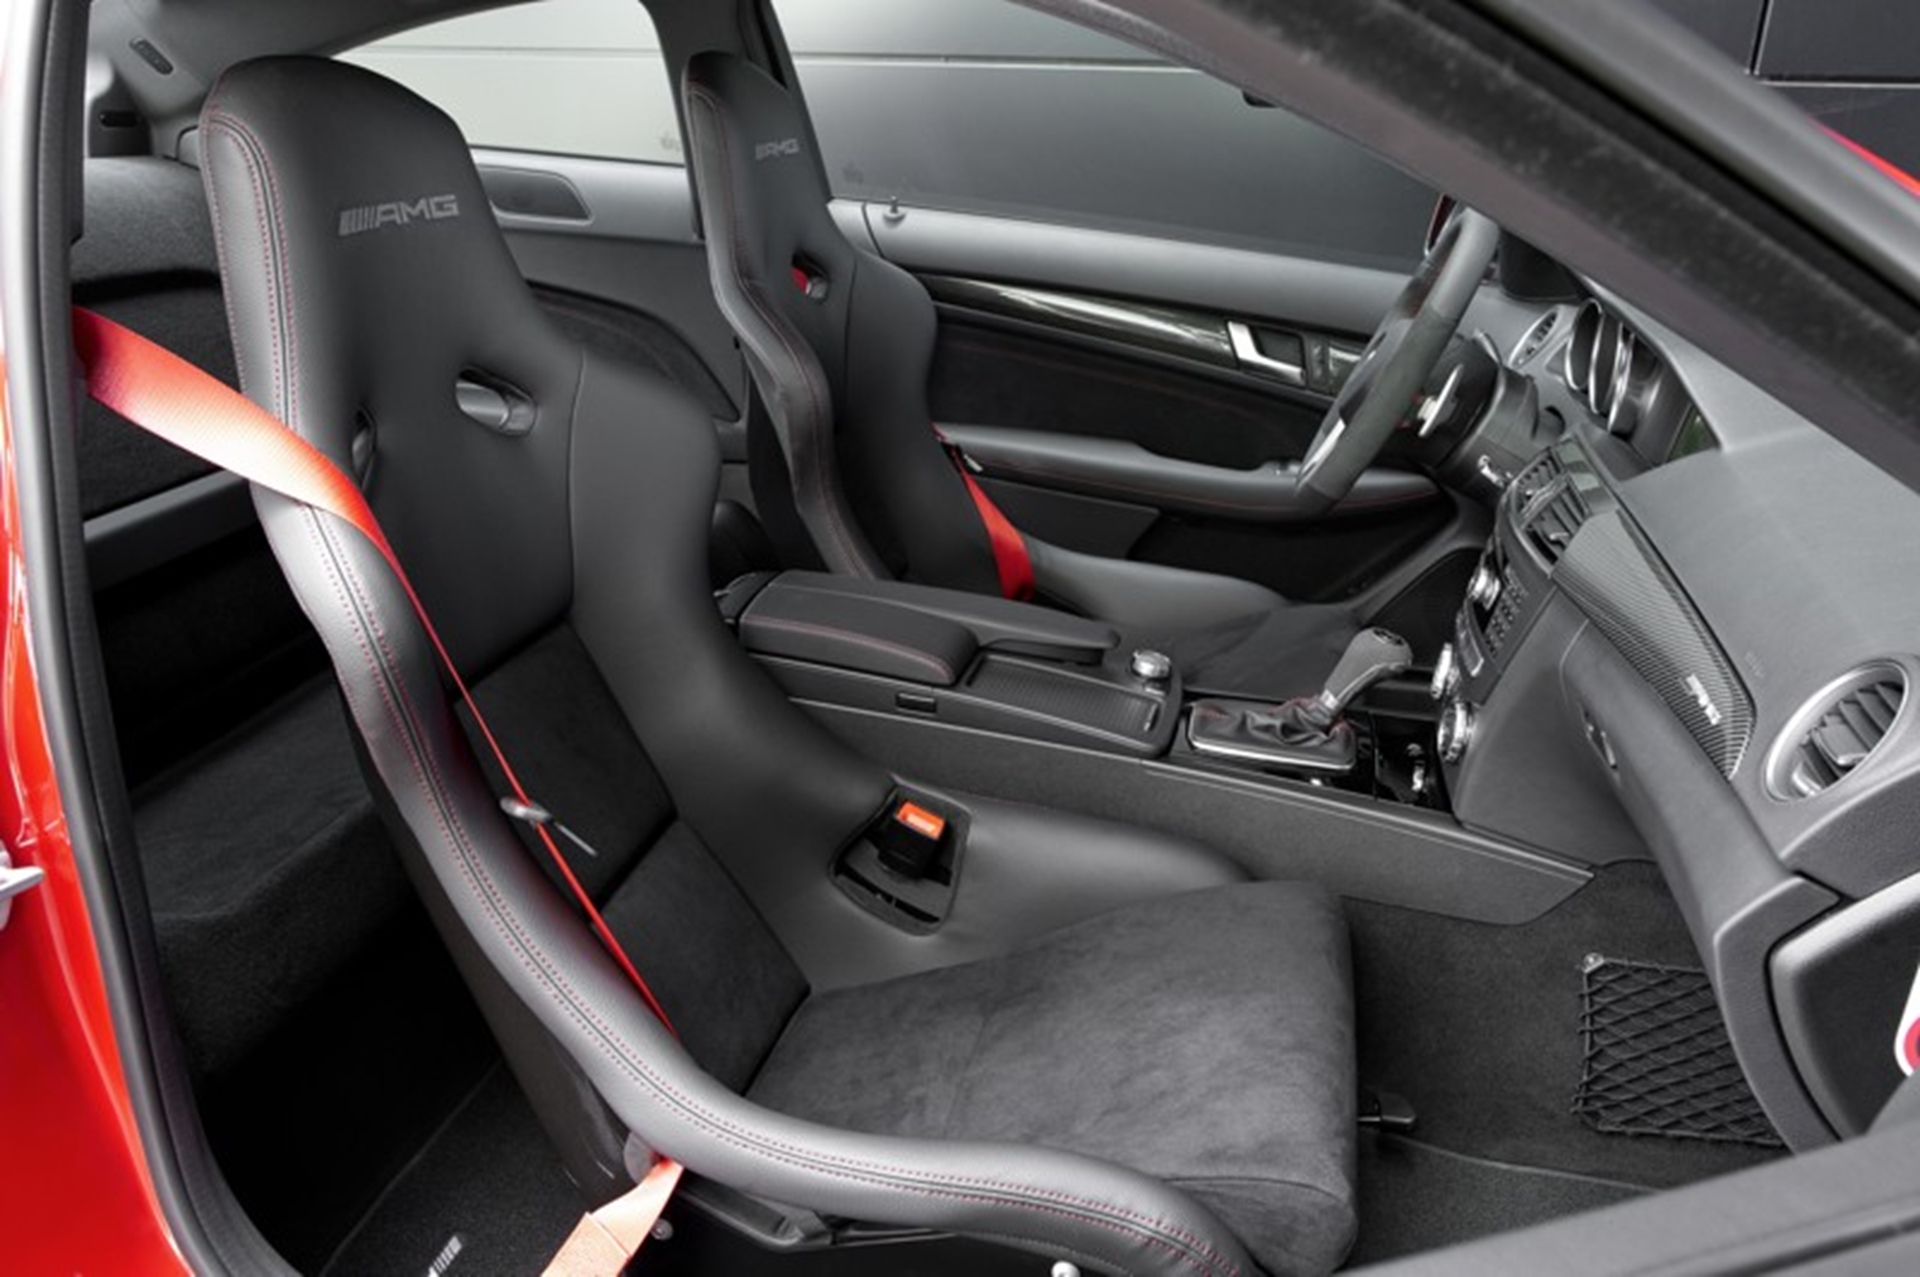 Mercedes Benz C 63 AMG Interior